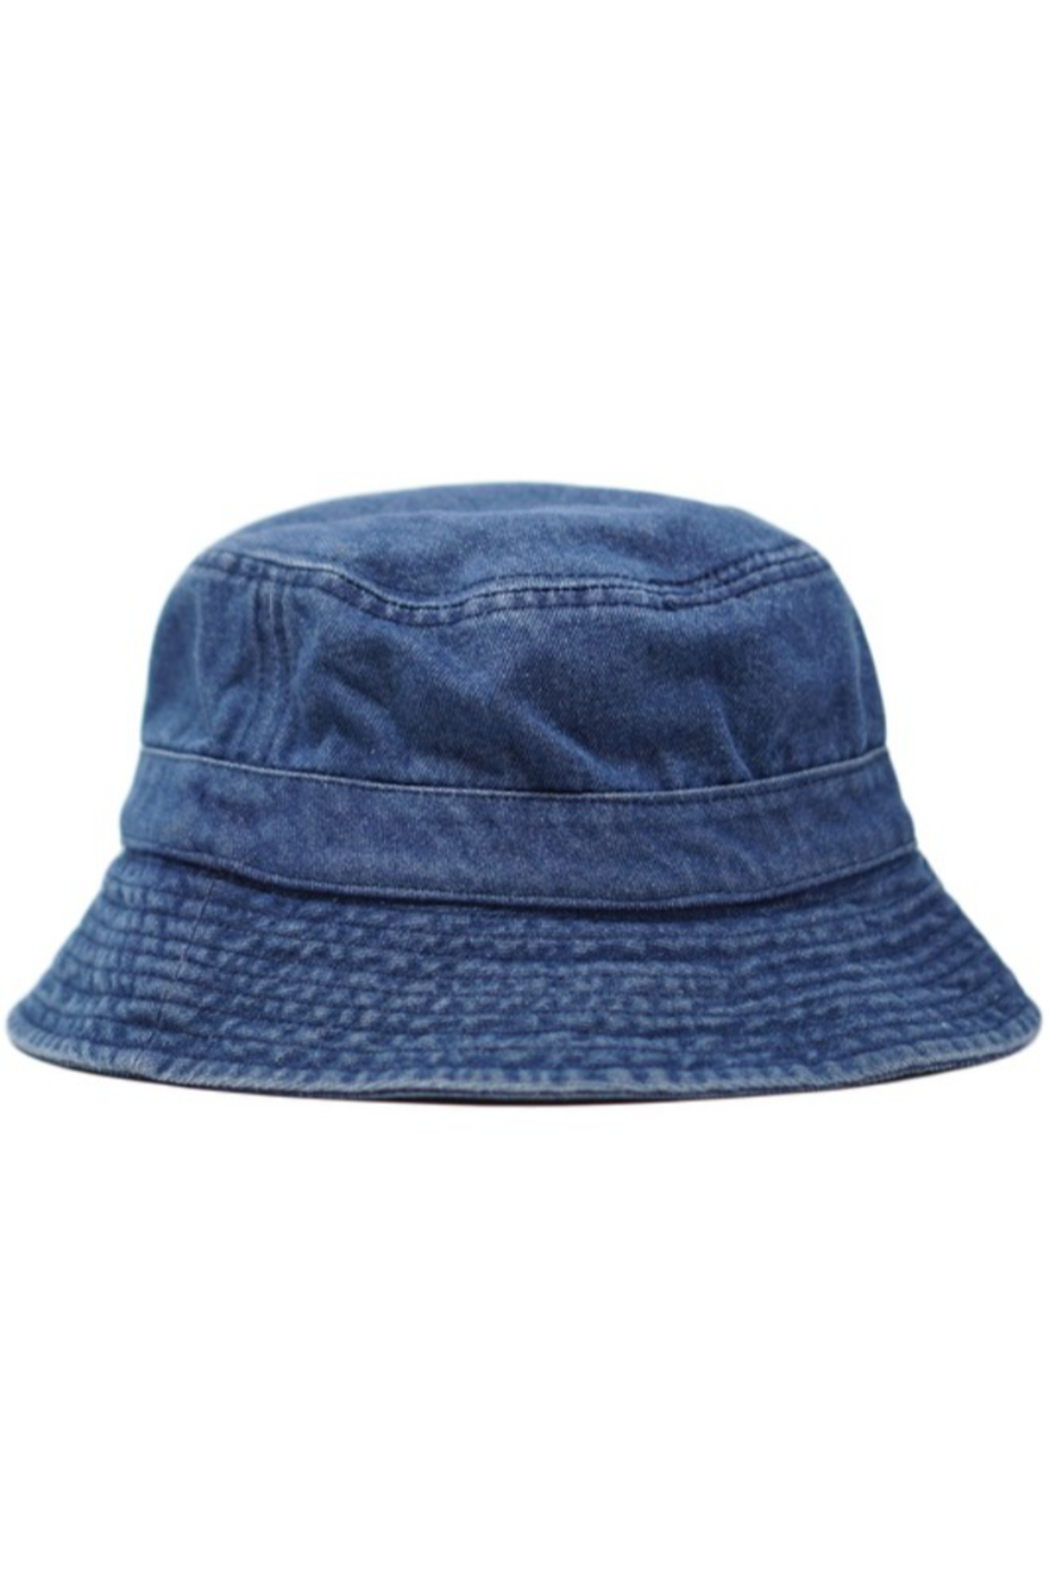 Olive and Pique DENIM BUCKET - Front Full Image